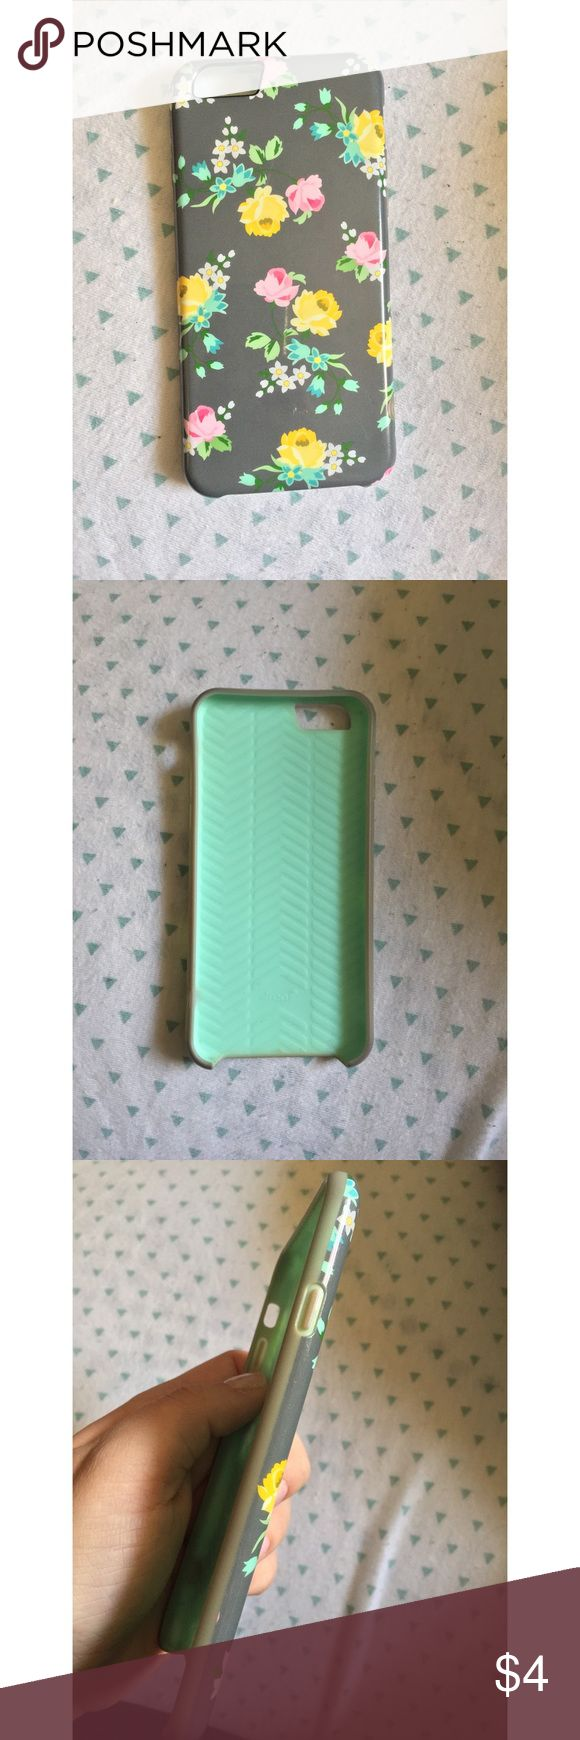 Mint & Gray Floral iPhone 6 Case Bought this iPhone 6 case about 2 years ago. It's been used a lot and has scratches on the back of it but they're not very visible unless you look close. The sides are also a bit dirty because it's been used so much but overall the case is in good condition, it has no cracks or breaks. This is a flexible phone case that ONLY FITS THE IPHONE 6. It's not compatible with the iPhone 6s/iPhone 6 plus, etc. Accessories Phone Cases